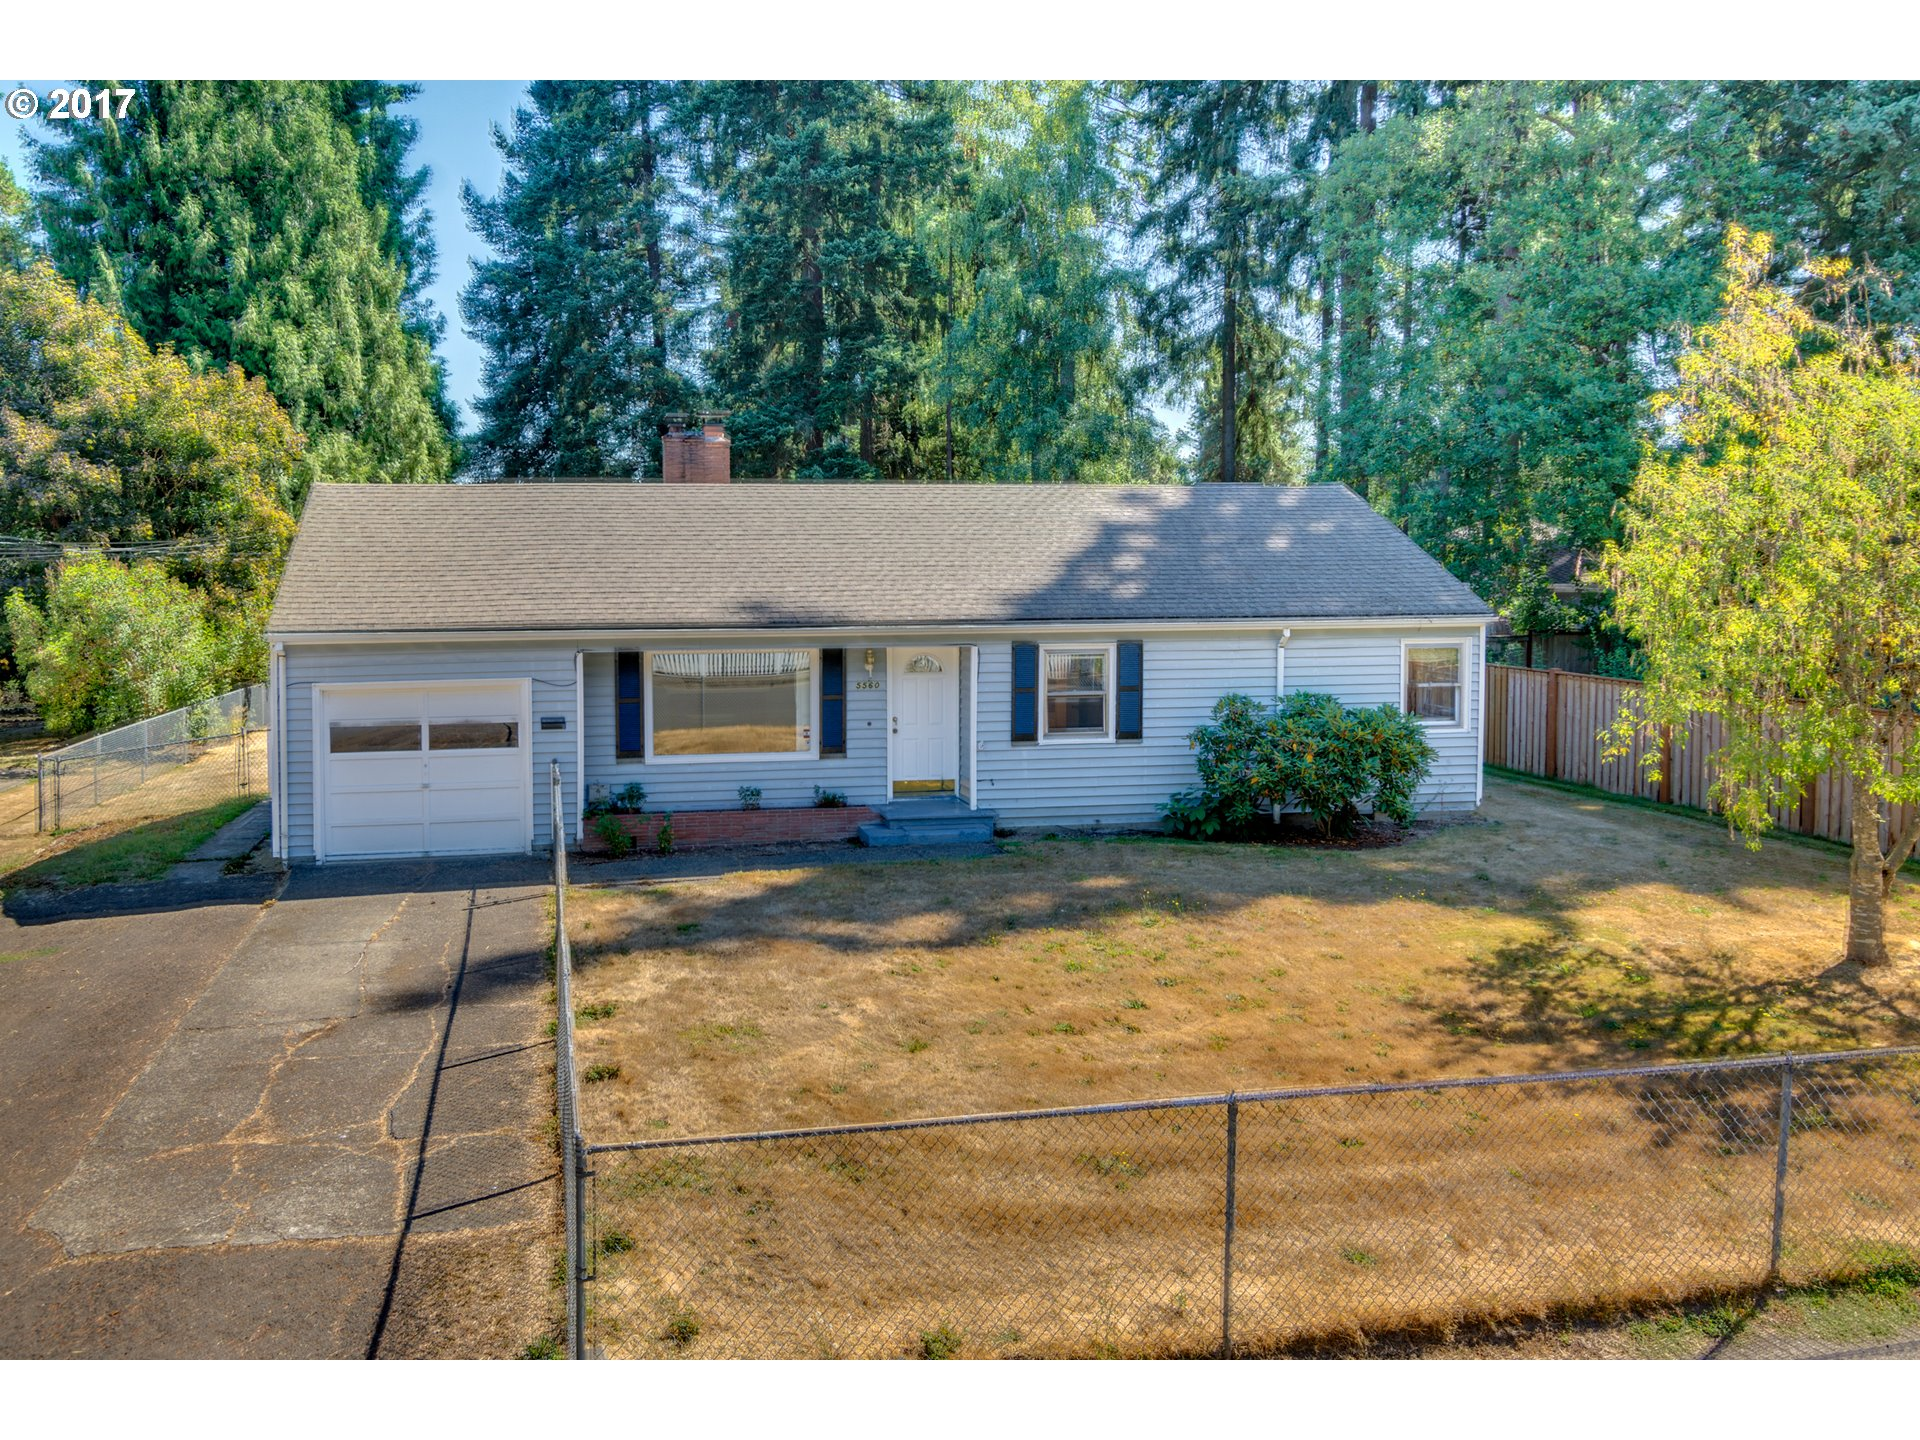 Great home, Move in Ready, sitting on a Large Lot, needs a little TLC, hardwood floors under carpet, plenty of potential just bring your hammer and design ideas. Property could be dividable its R9 buyer to do their own due-diligence.